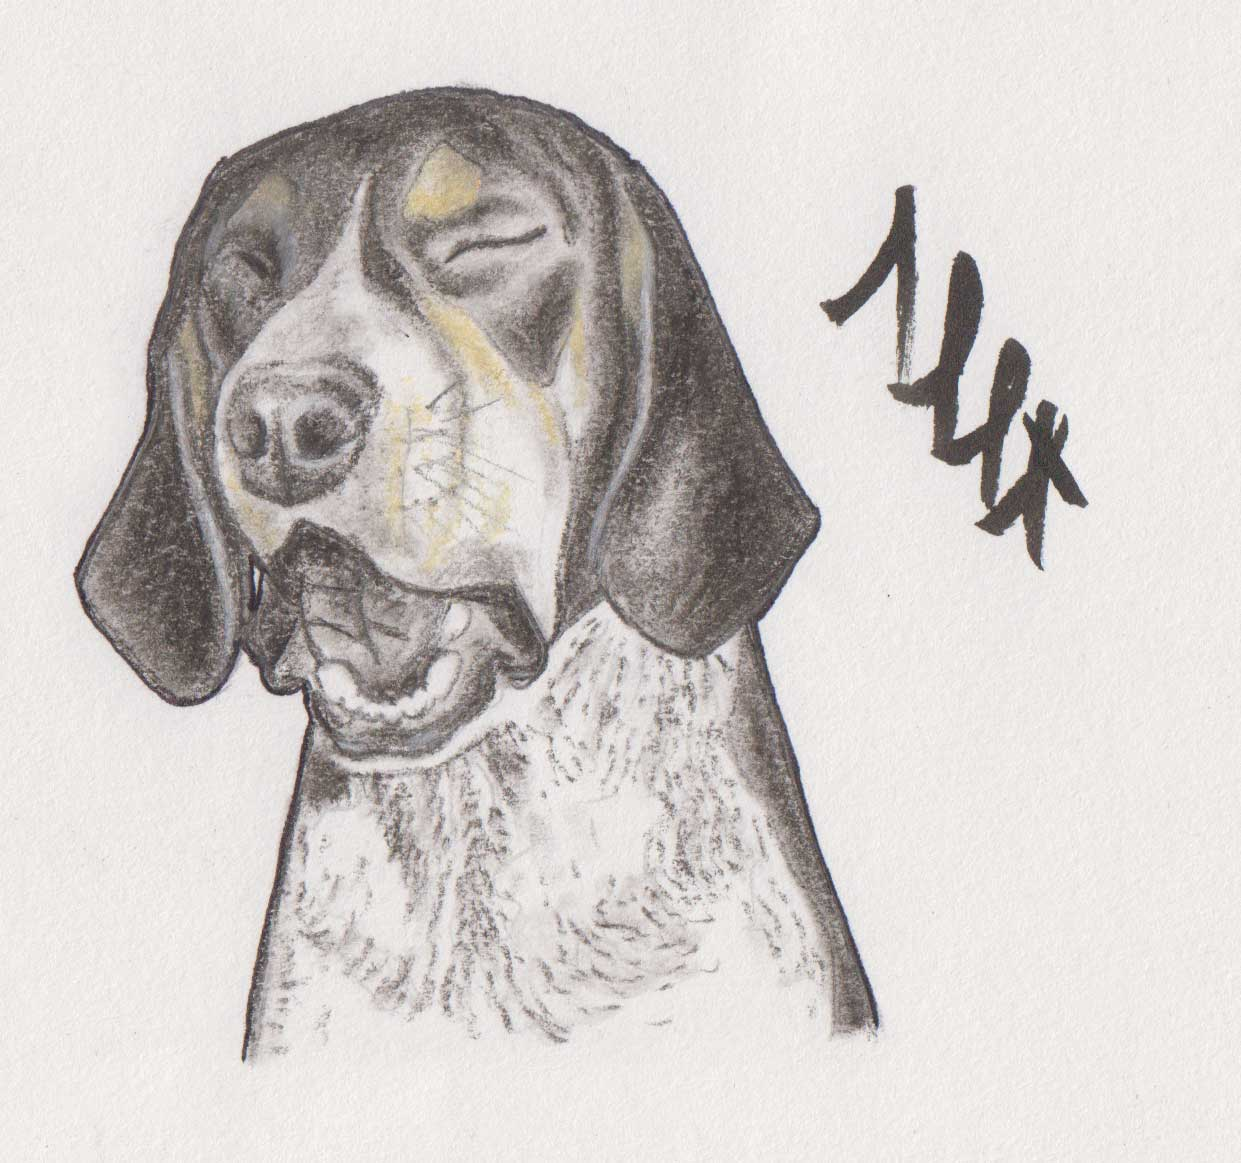 Disappointed dog painting by Alessandro Bruno.